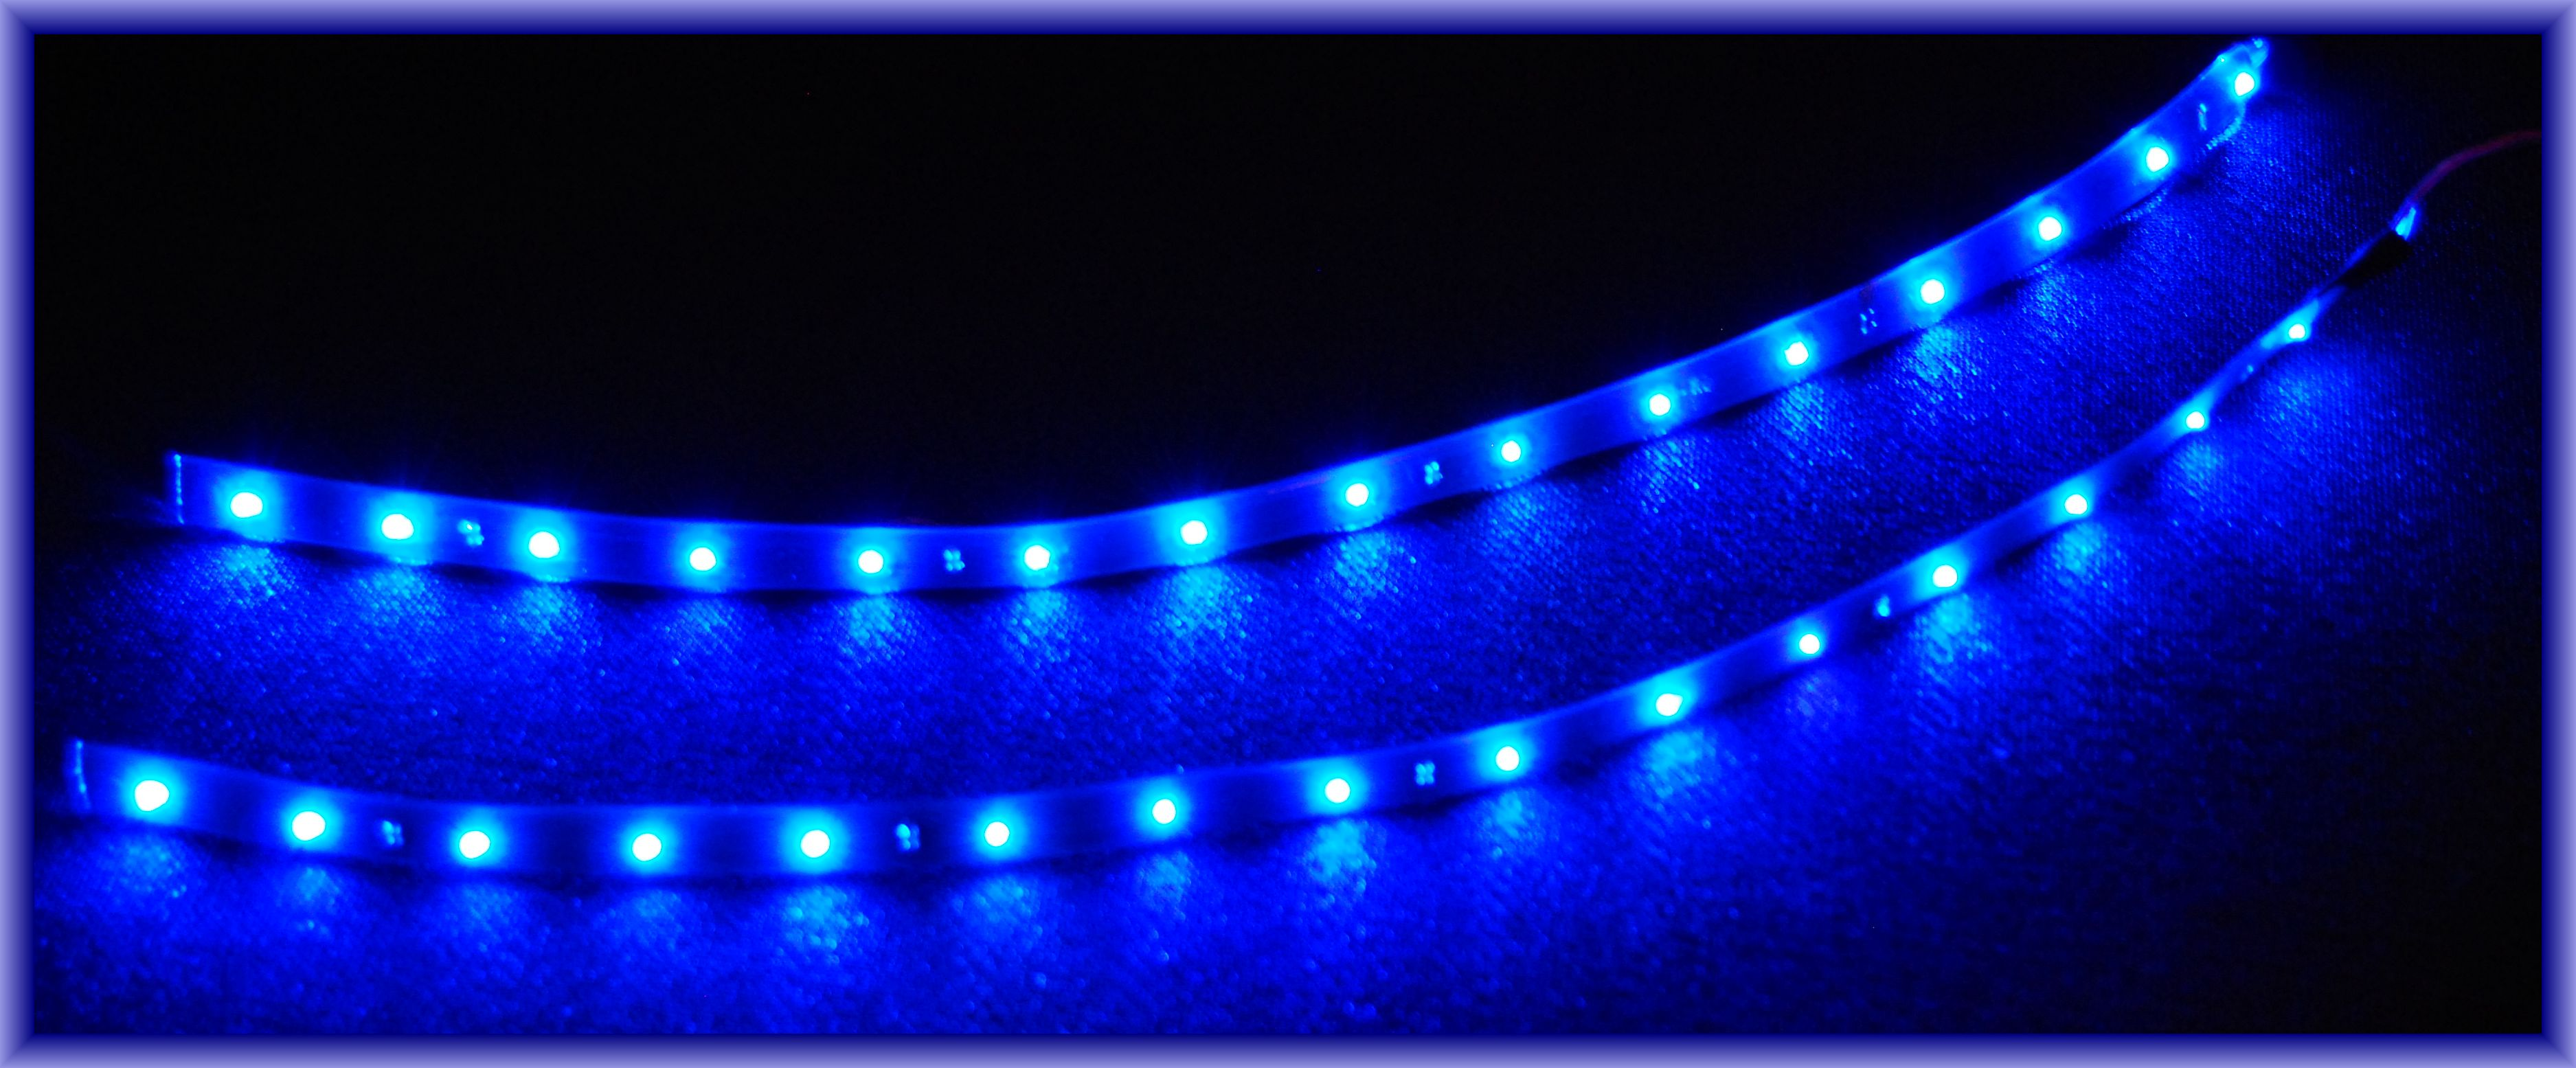 3 x 30cm pc beleuchtung led blau pc licht incl kabel ebay for Beleuchtung led